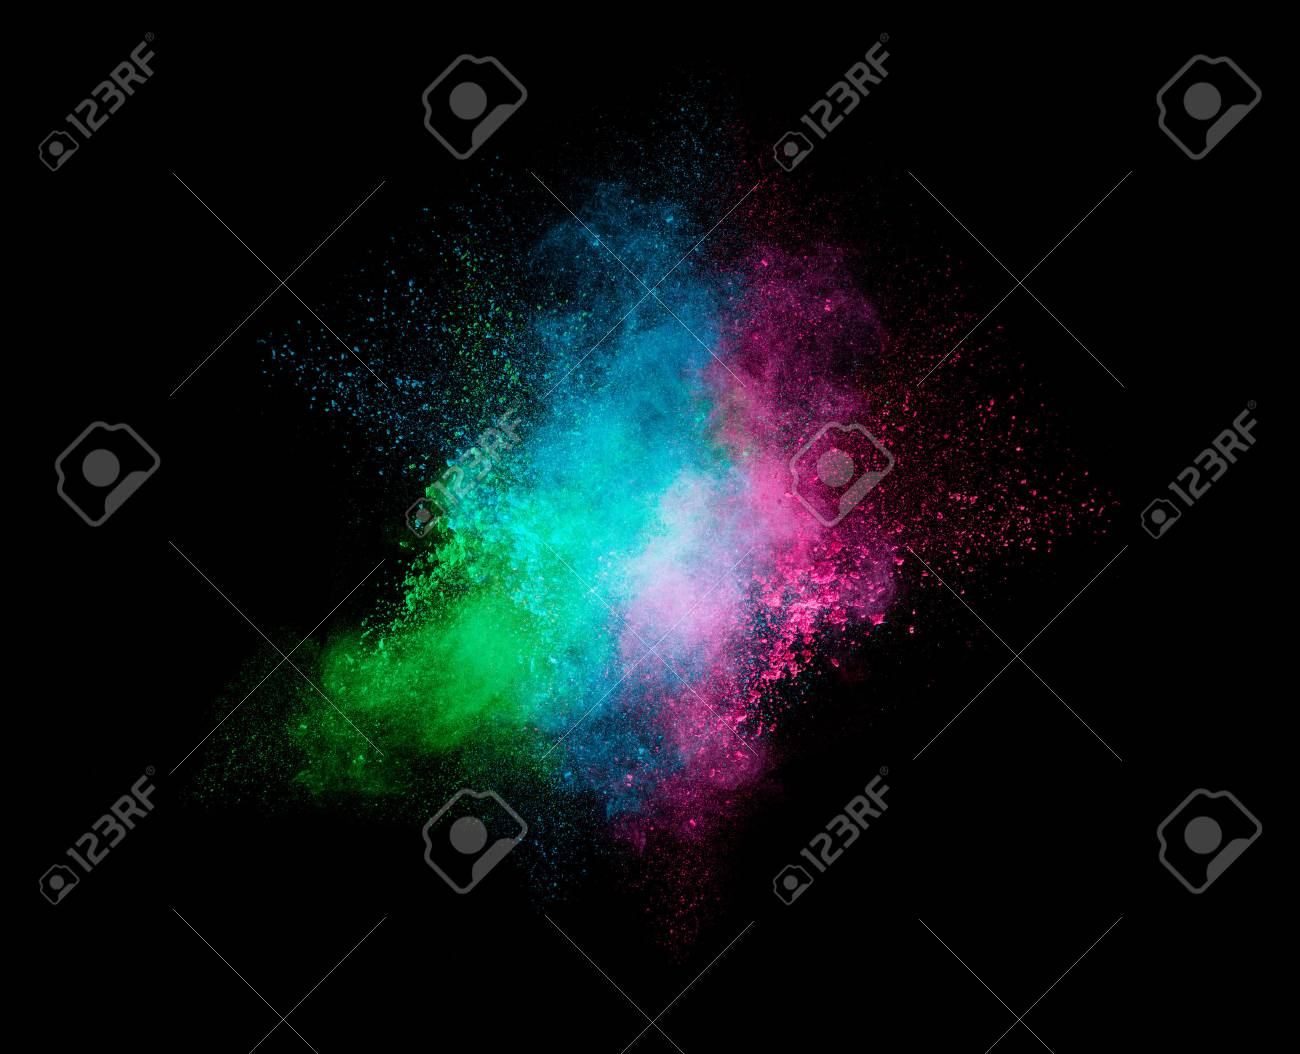 Colorful dust particle explosion resembling a pyrotechnic effect over black background. Closeup of a color explosion isolated on black - 55147186